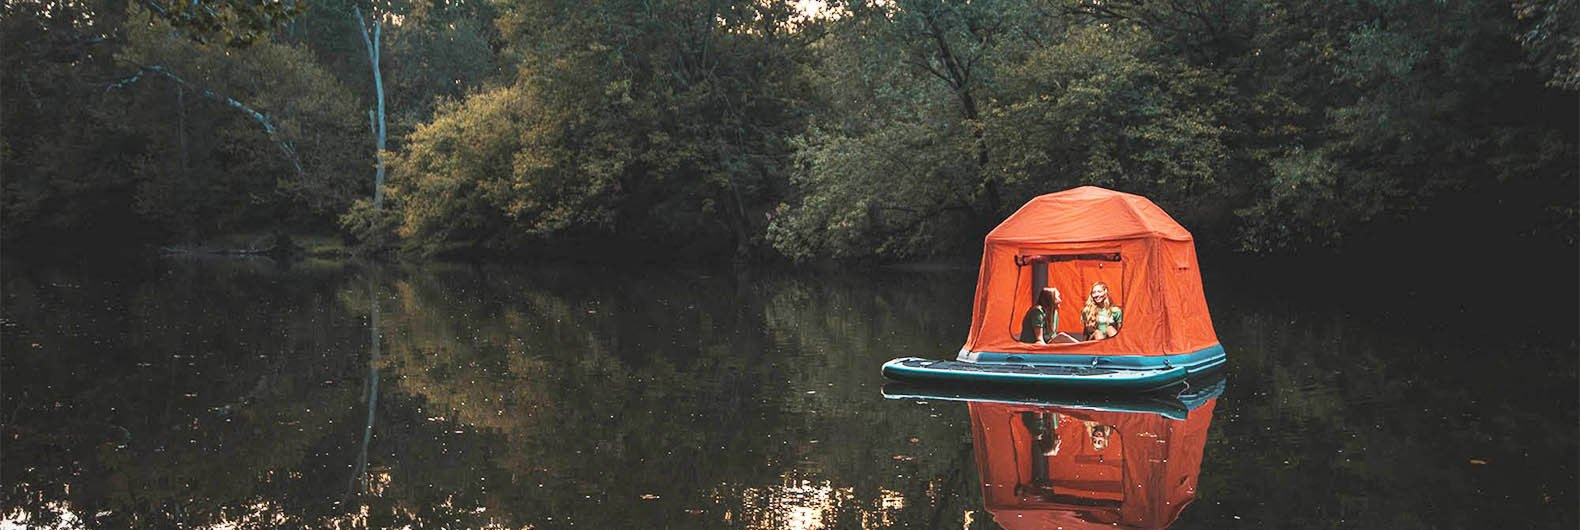 This incredible floating tent is the stuff of c&ing dreams & This incredible floating tent is the stuff of camping dreams ...